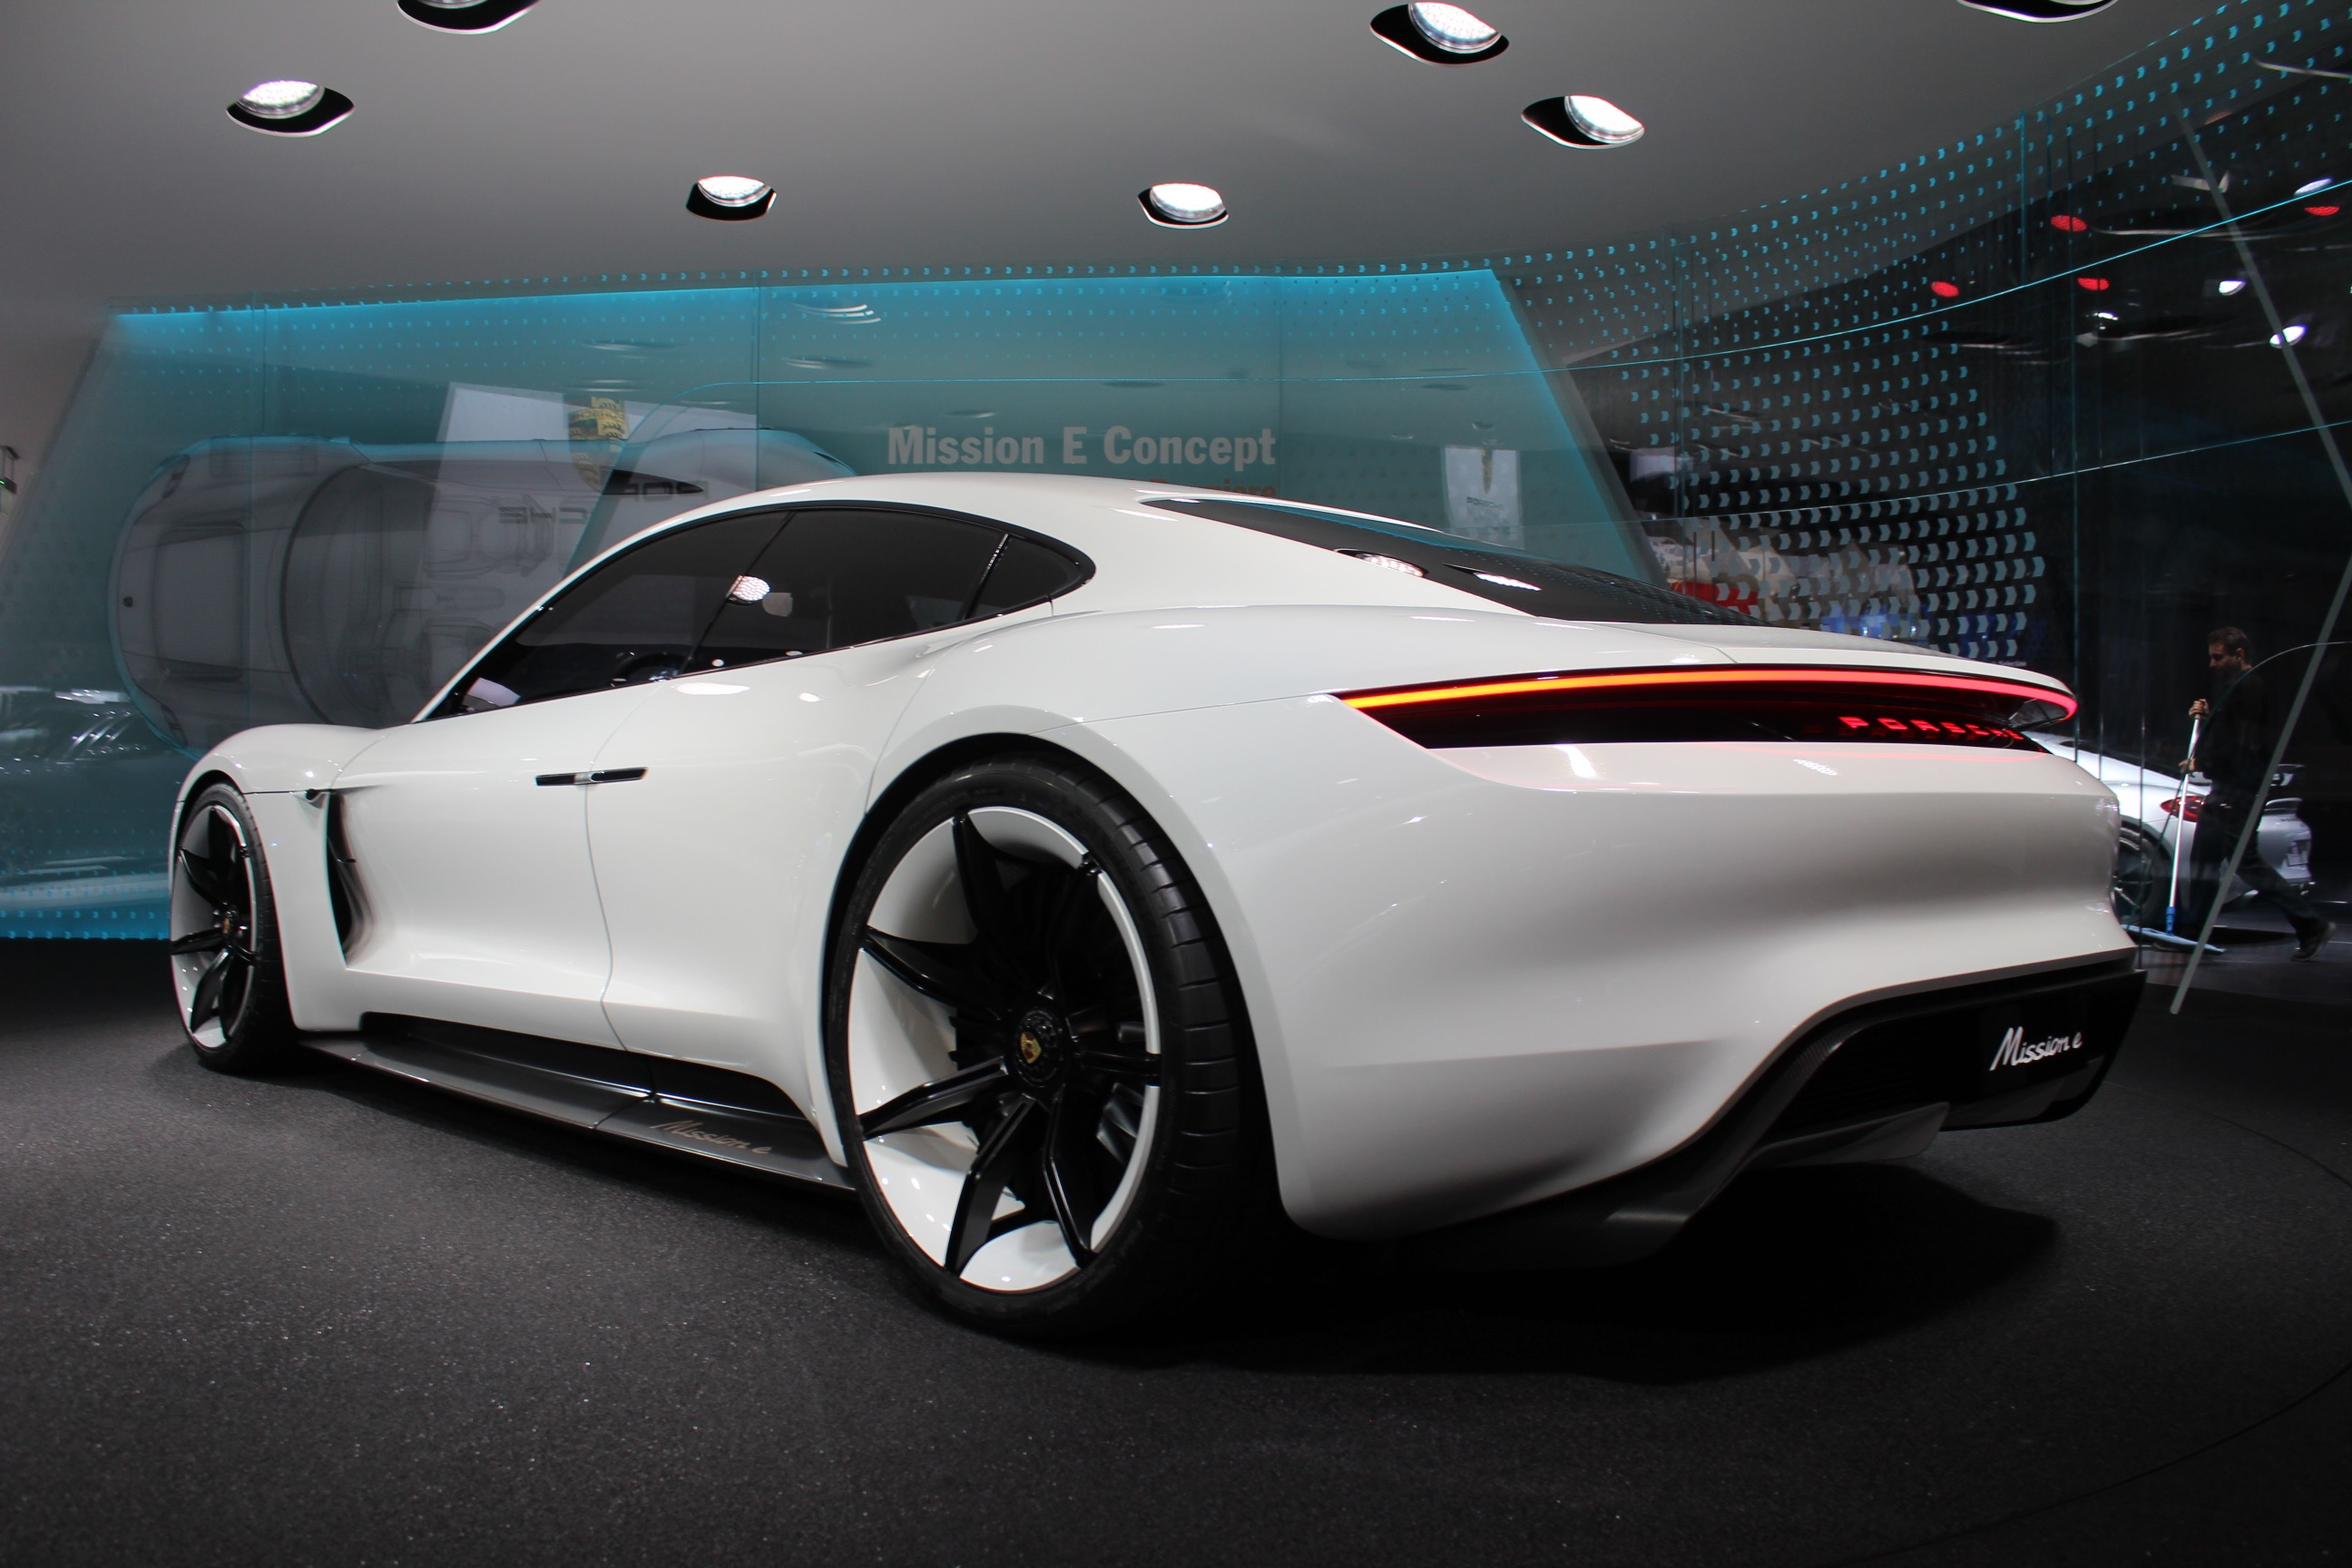 Porsche design chief talks about the Mission E concept: Video